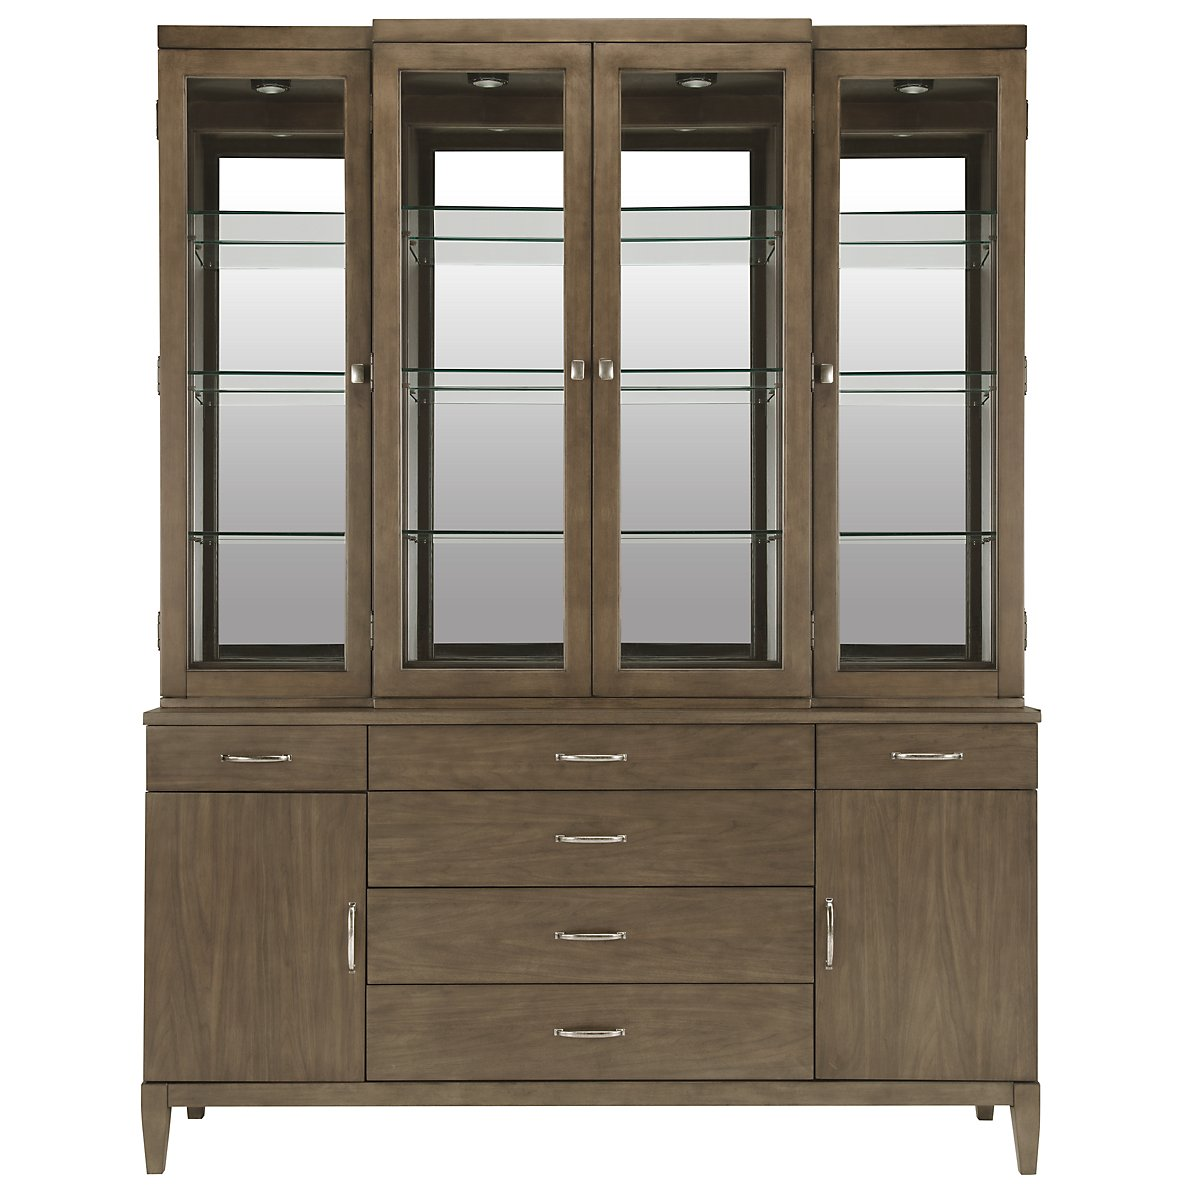 dresser home occasional uk painted grey bordeaux cabinet costco furniture light p tables wooden room sideboards china dining